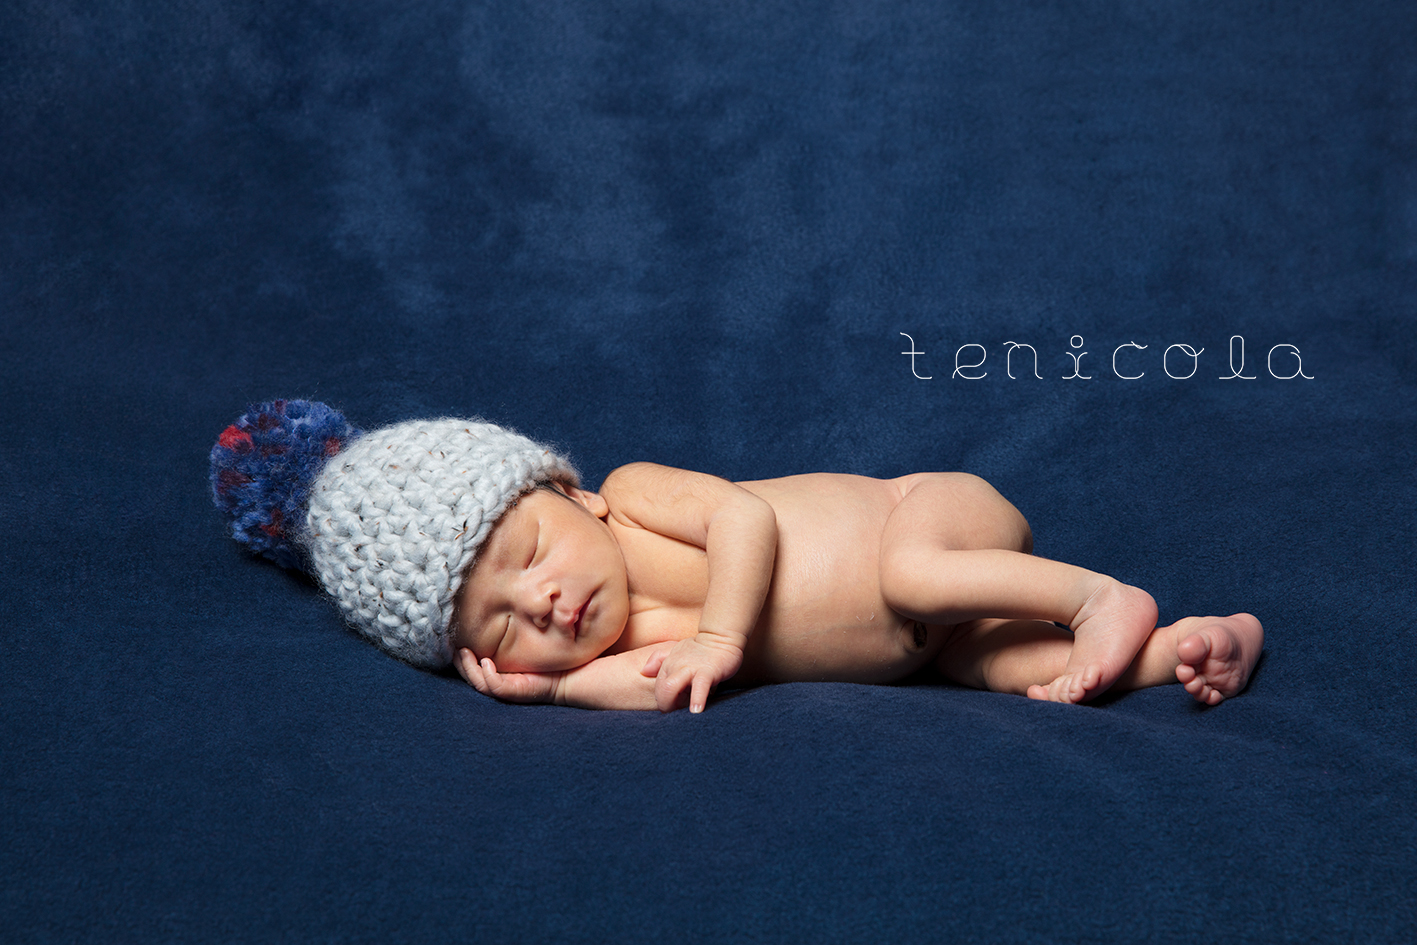 Newborn photo tenicola newborn photo tenicola ニューボーンフォト 2016_09595